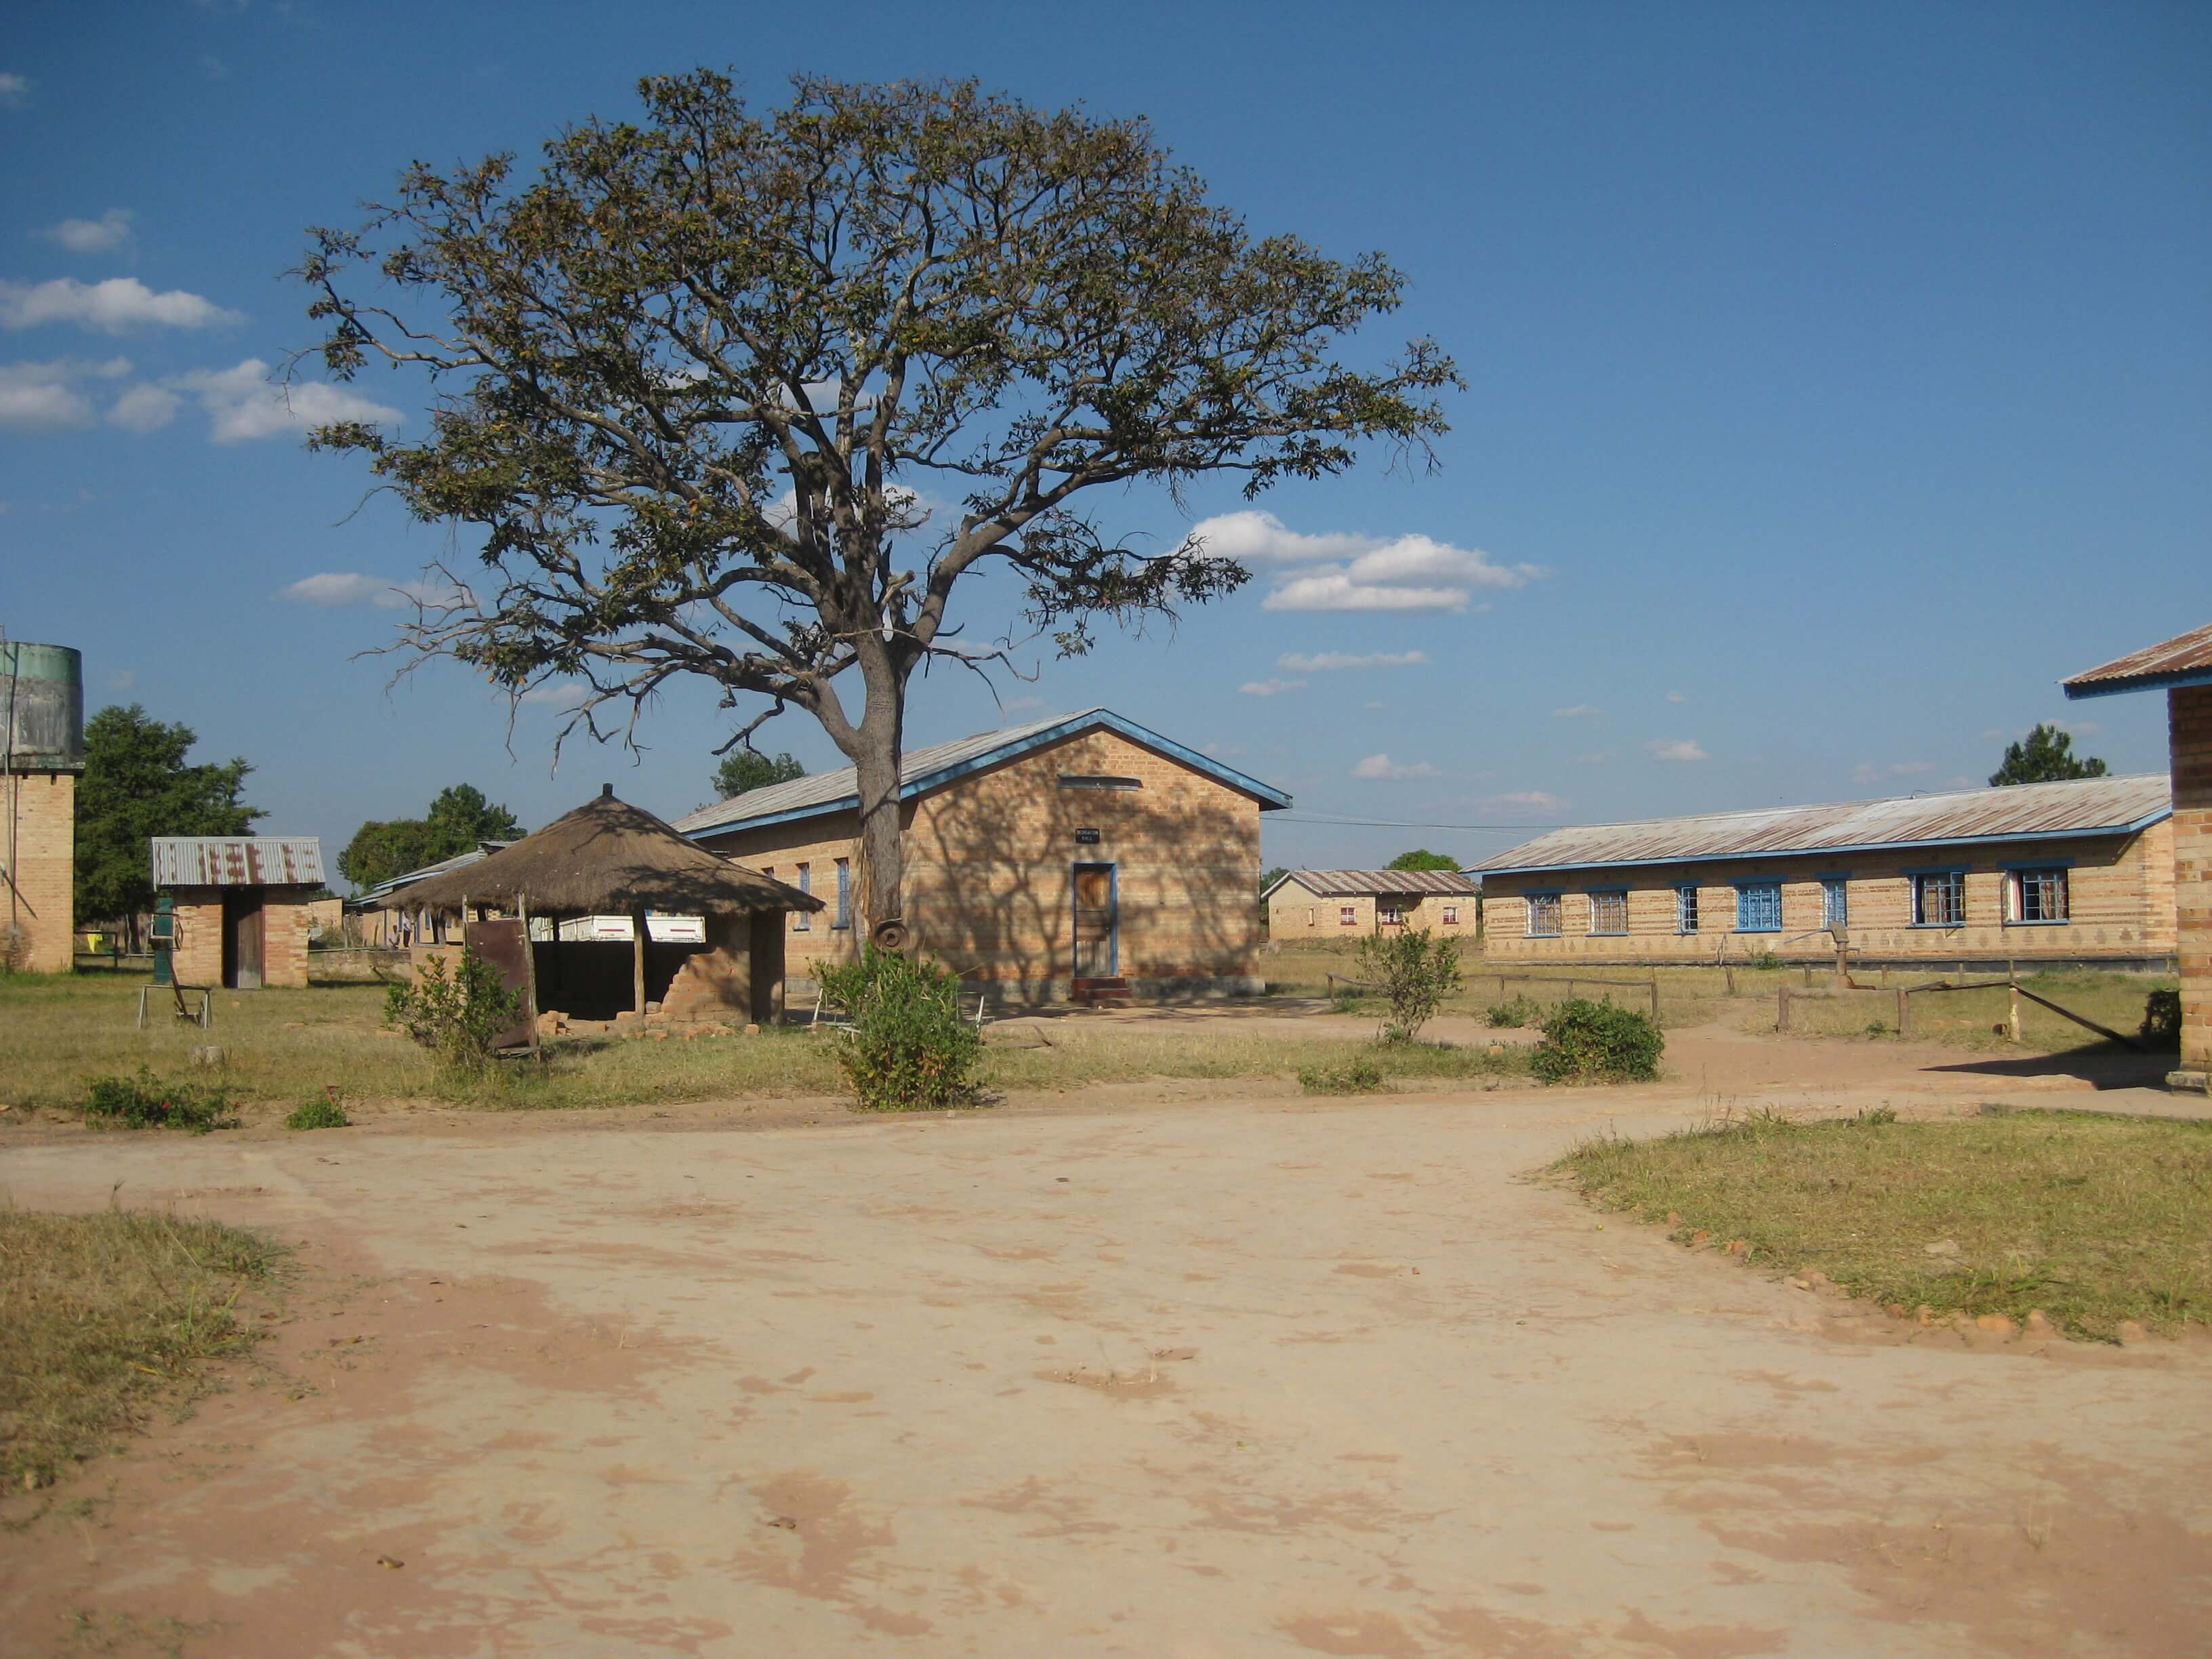 Mporokoso School for the Blind